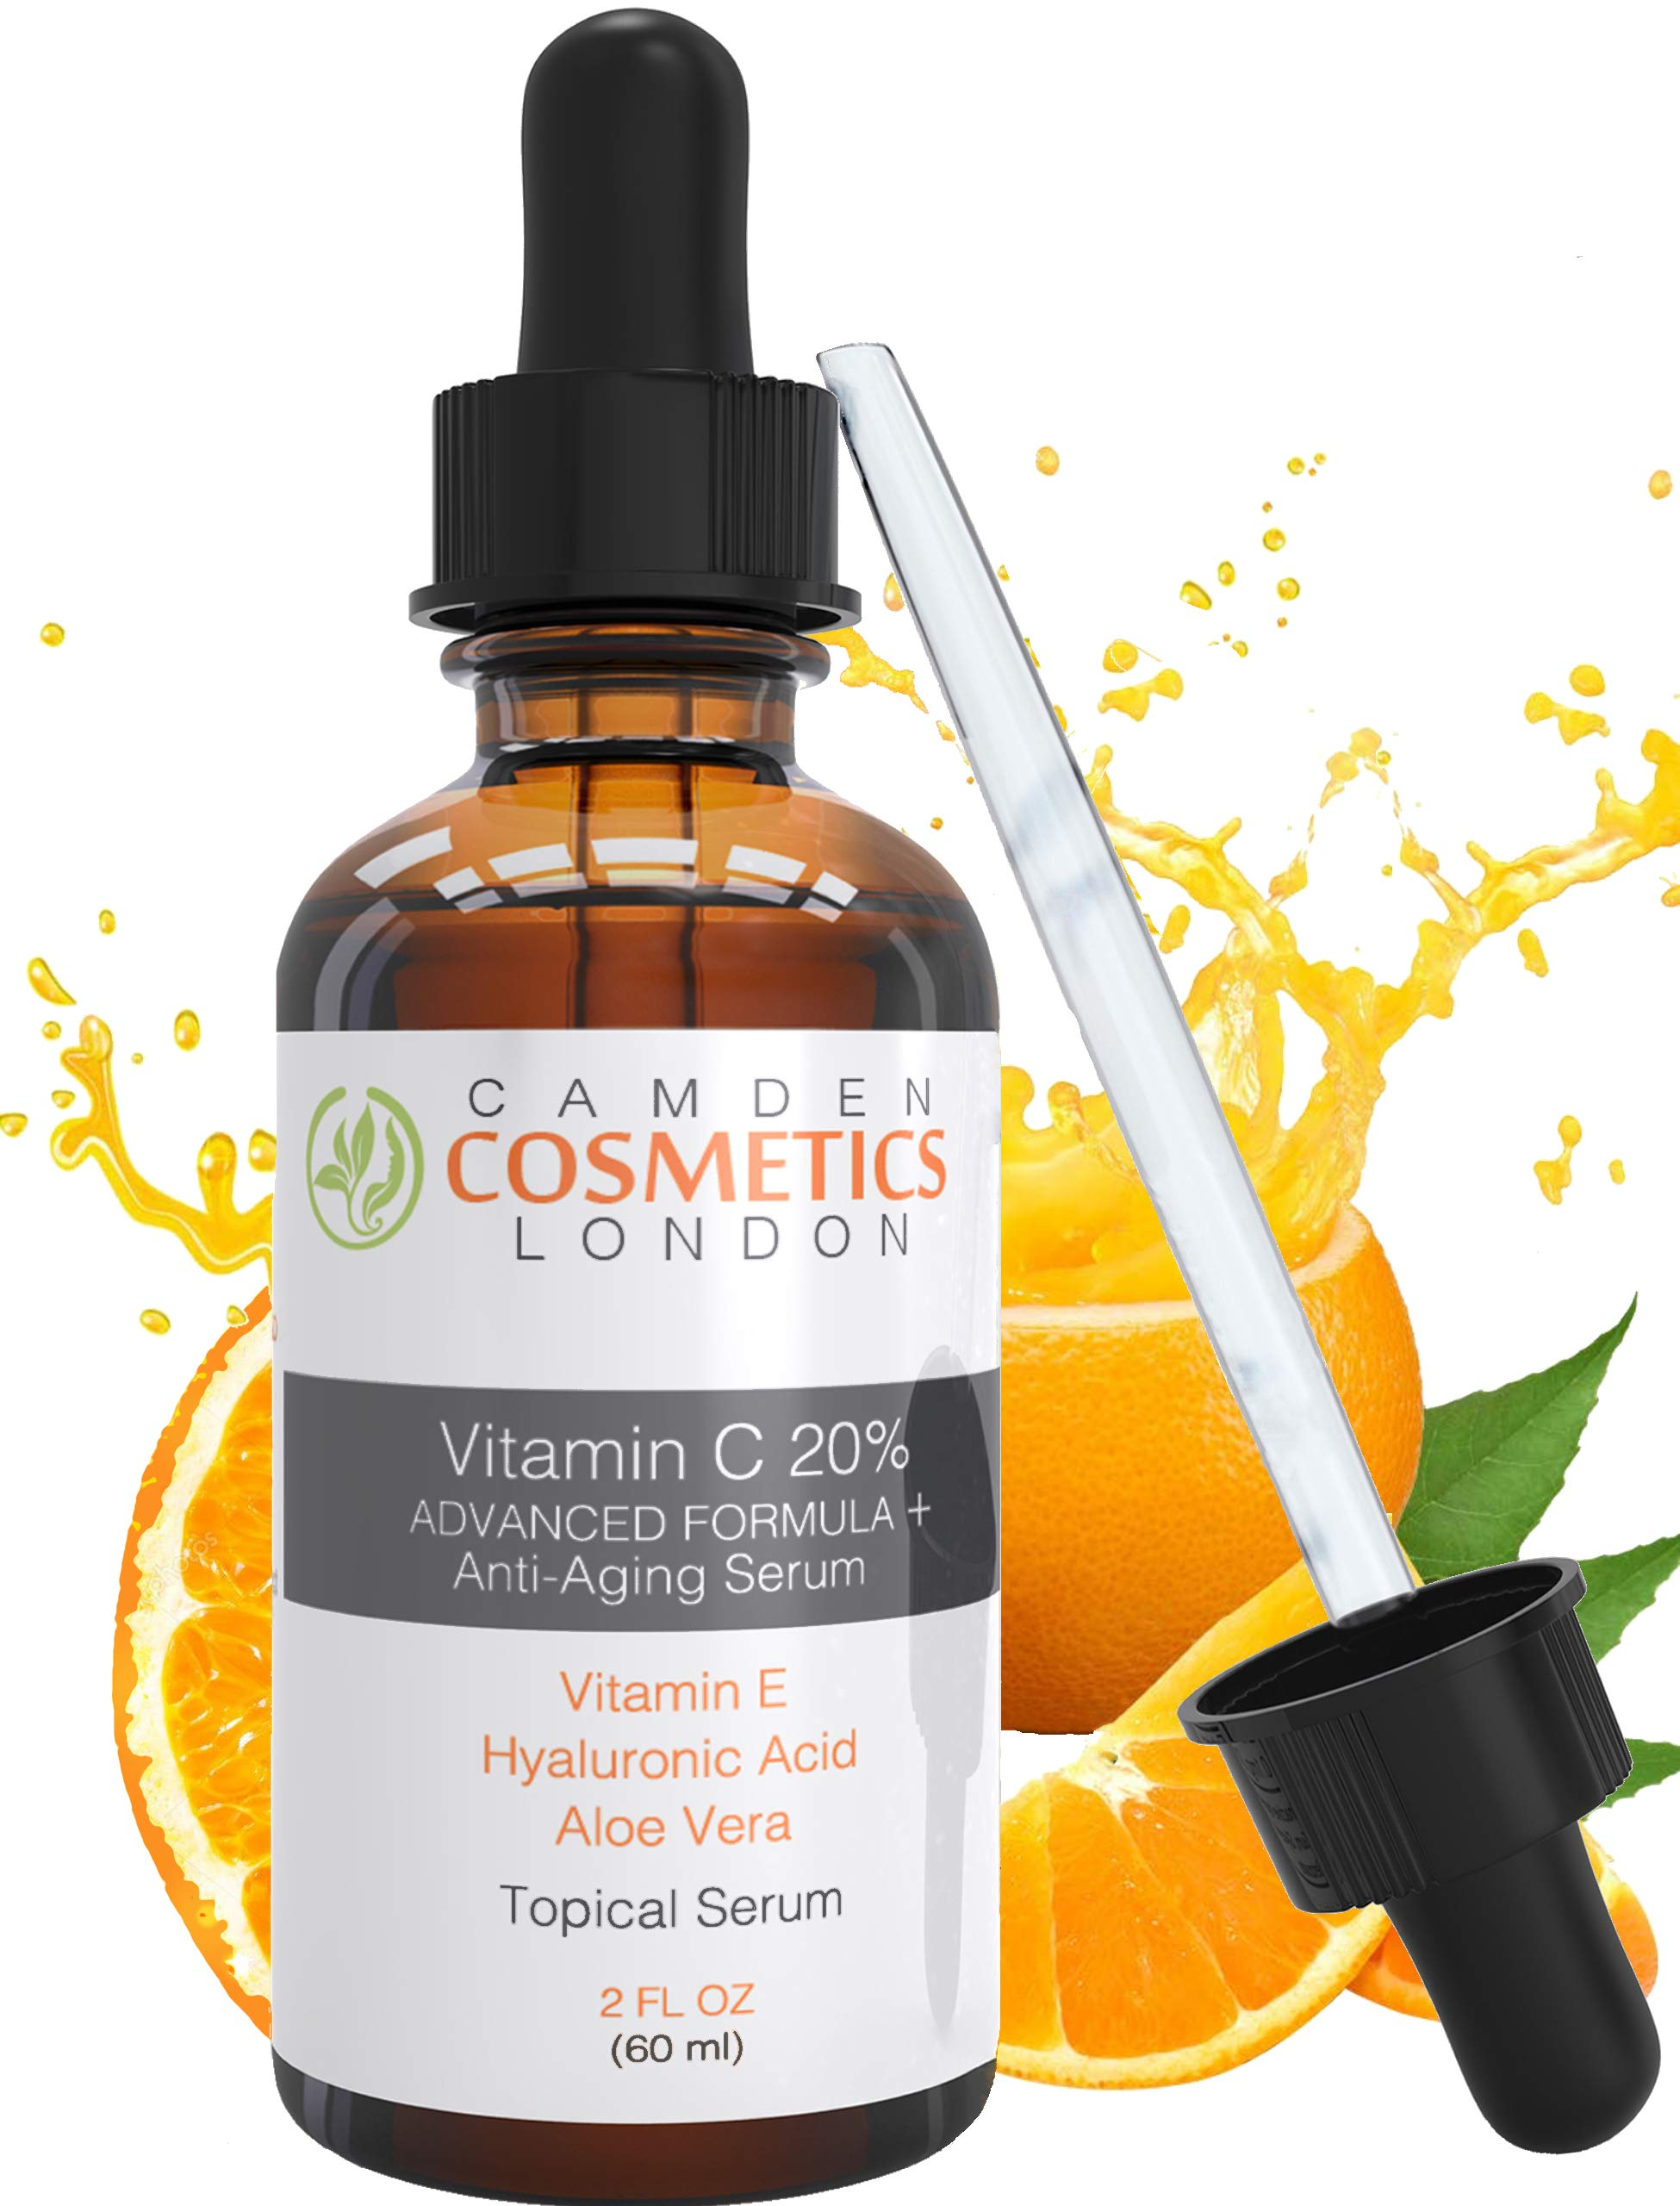 Vitamin C Serum For Face With Hyaluronic Acid + Vitamin E + Aloe Vera - LARGE 60ml Bottle By CAMDEN COSMETICS™ - Men/Women - 2oz Clinical Strength 20% Vitamin C Serum With Hyaluronic Acid: Most Recommended Premium Anti Ageing Serum for Increased Collagen Production & Less Fine Lines, Dark Spots & Wrinkles - 98% Natural Age Defying Serum with Organic Clinical Strength 20% Vitamin C + Moisturiser - Vitamin C Serum Vegan - Vitamin C Serum for Acne Scars, Plump, Hydrate, Brighten Skin, Makeup Primer